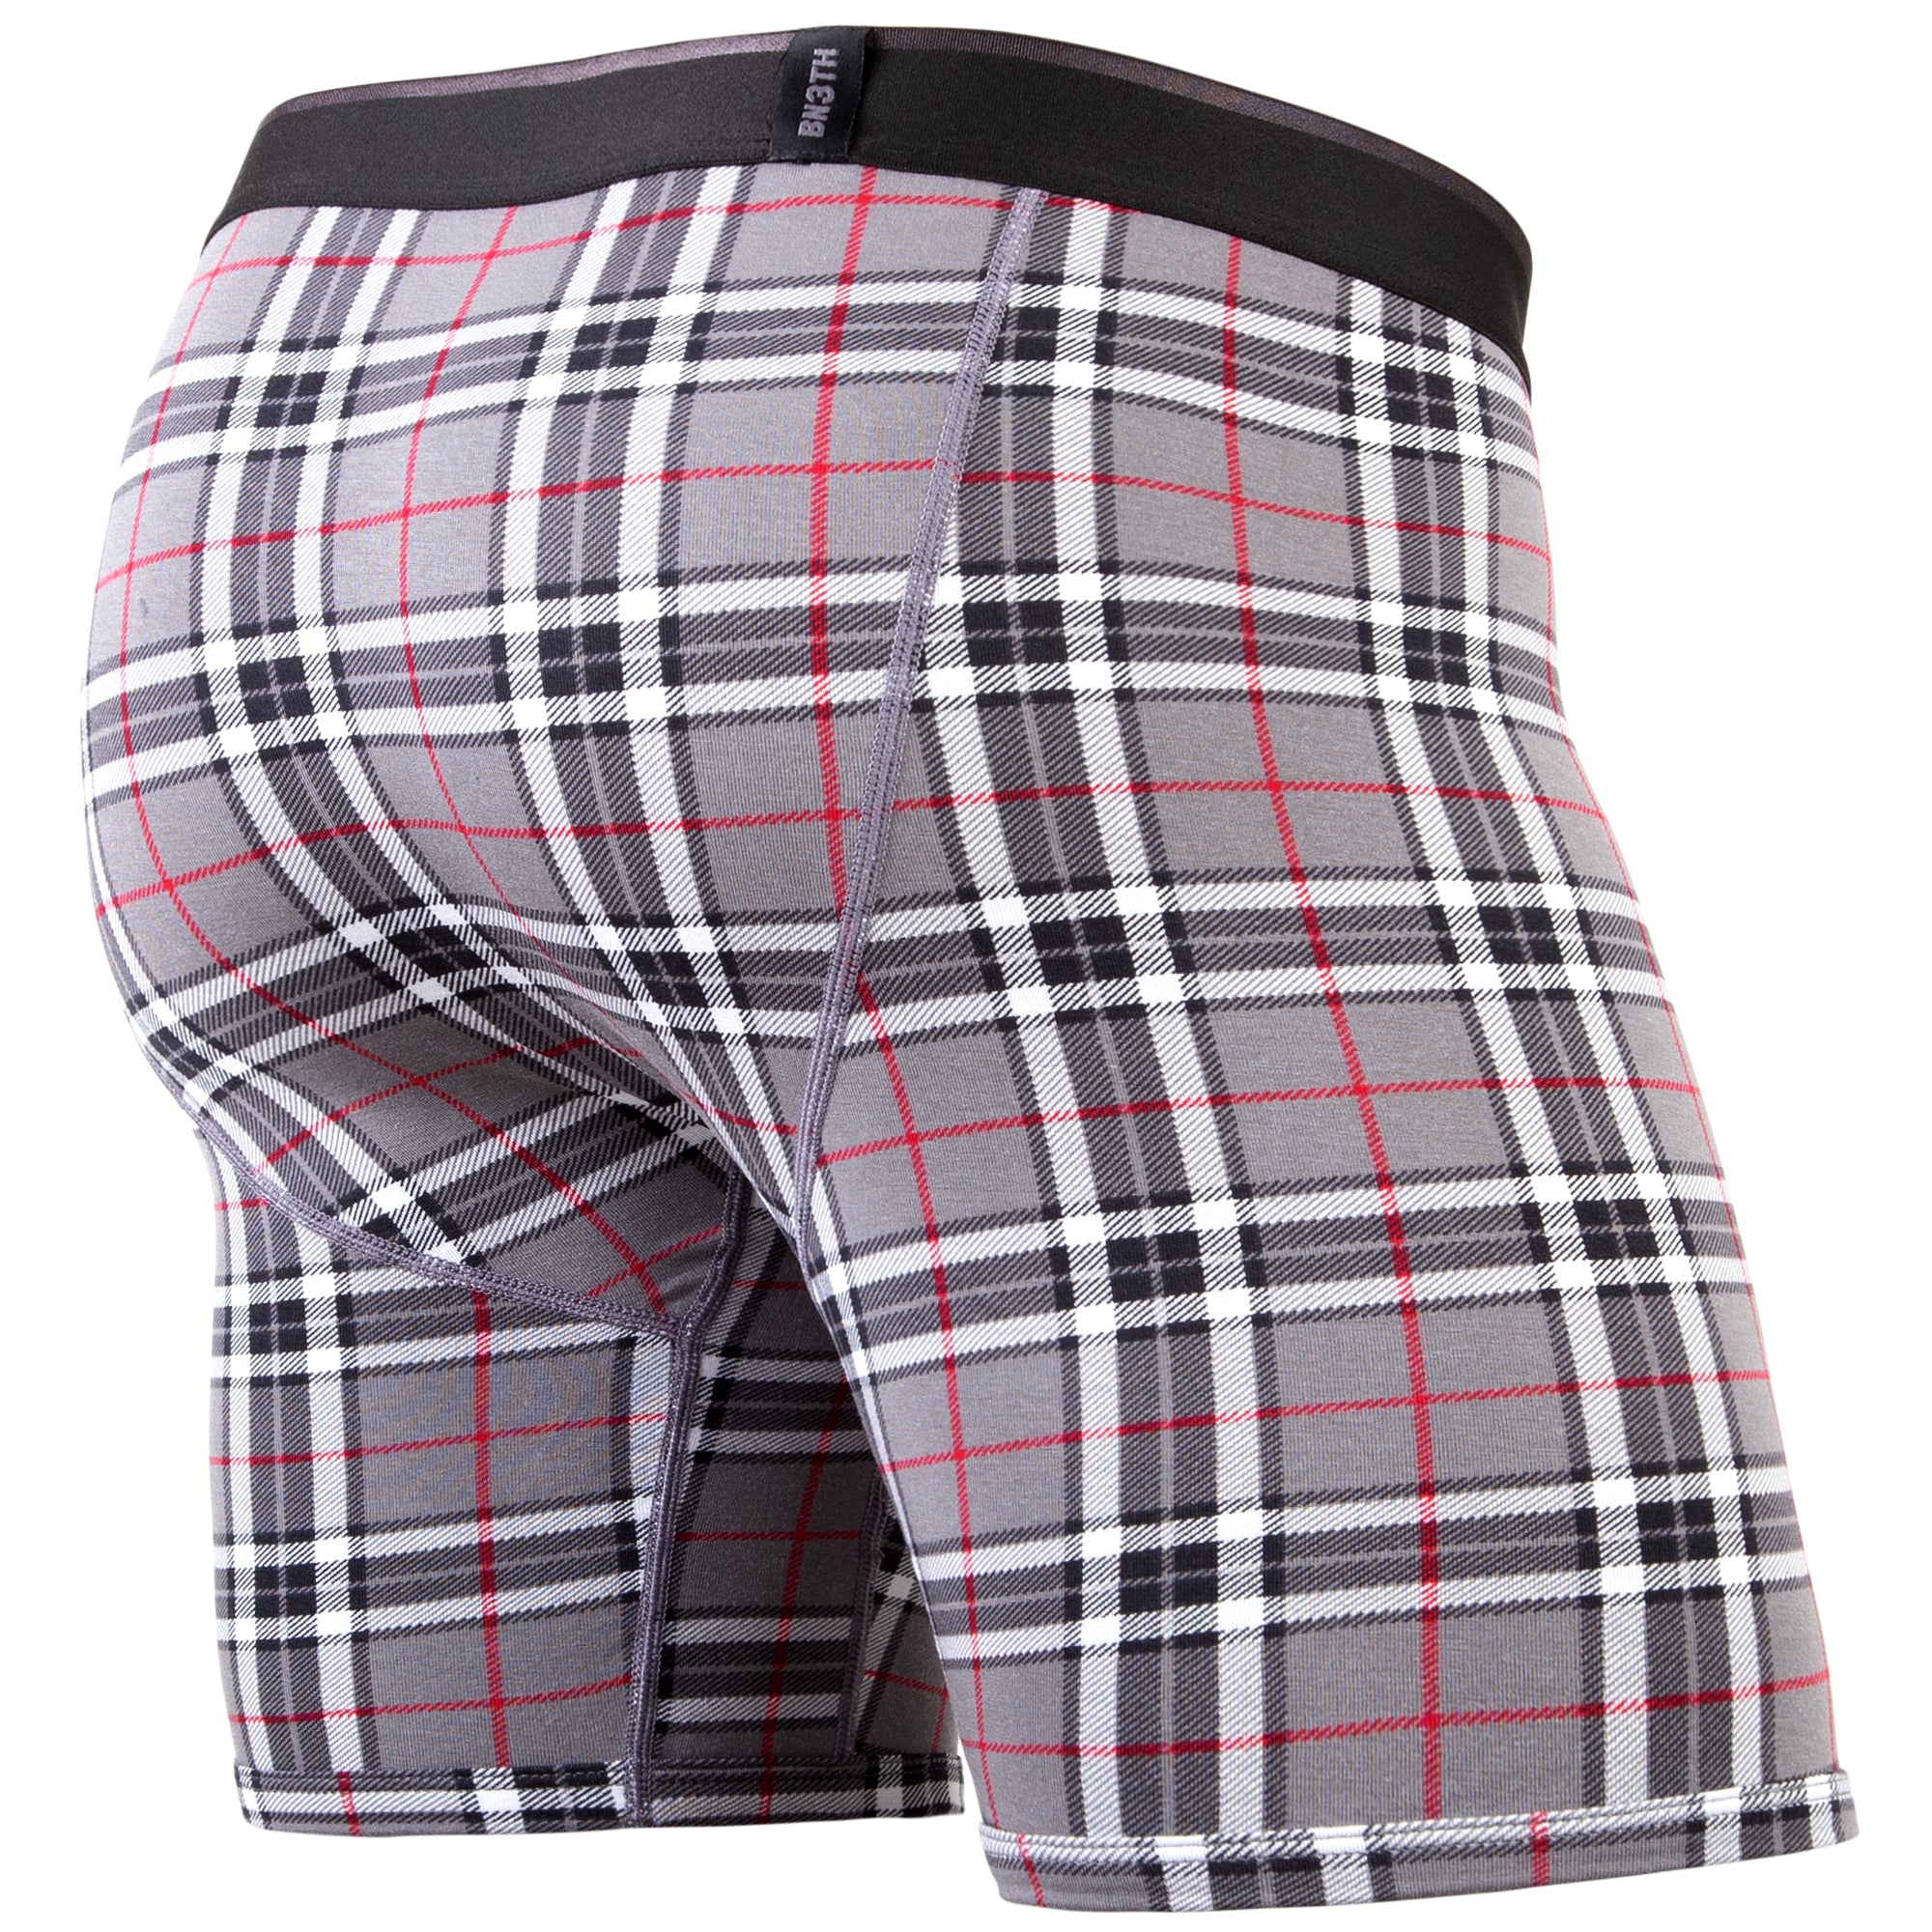 BN3TH classic boxer brief Print Fireside Plaid Grey